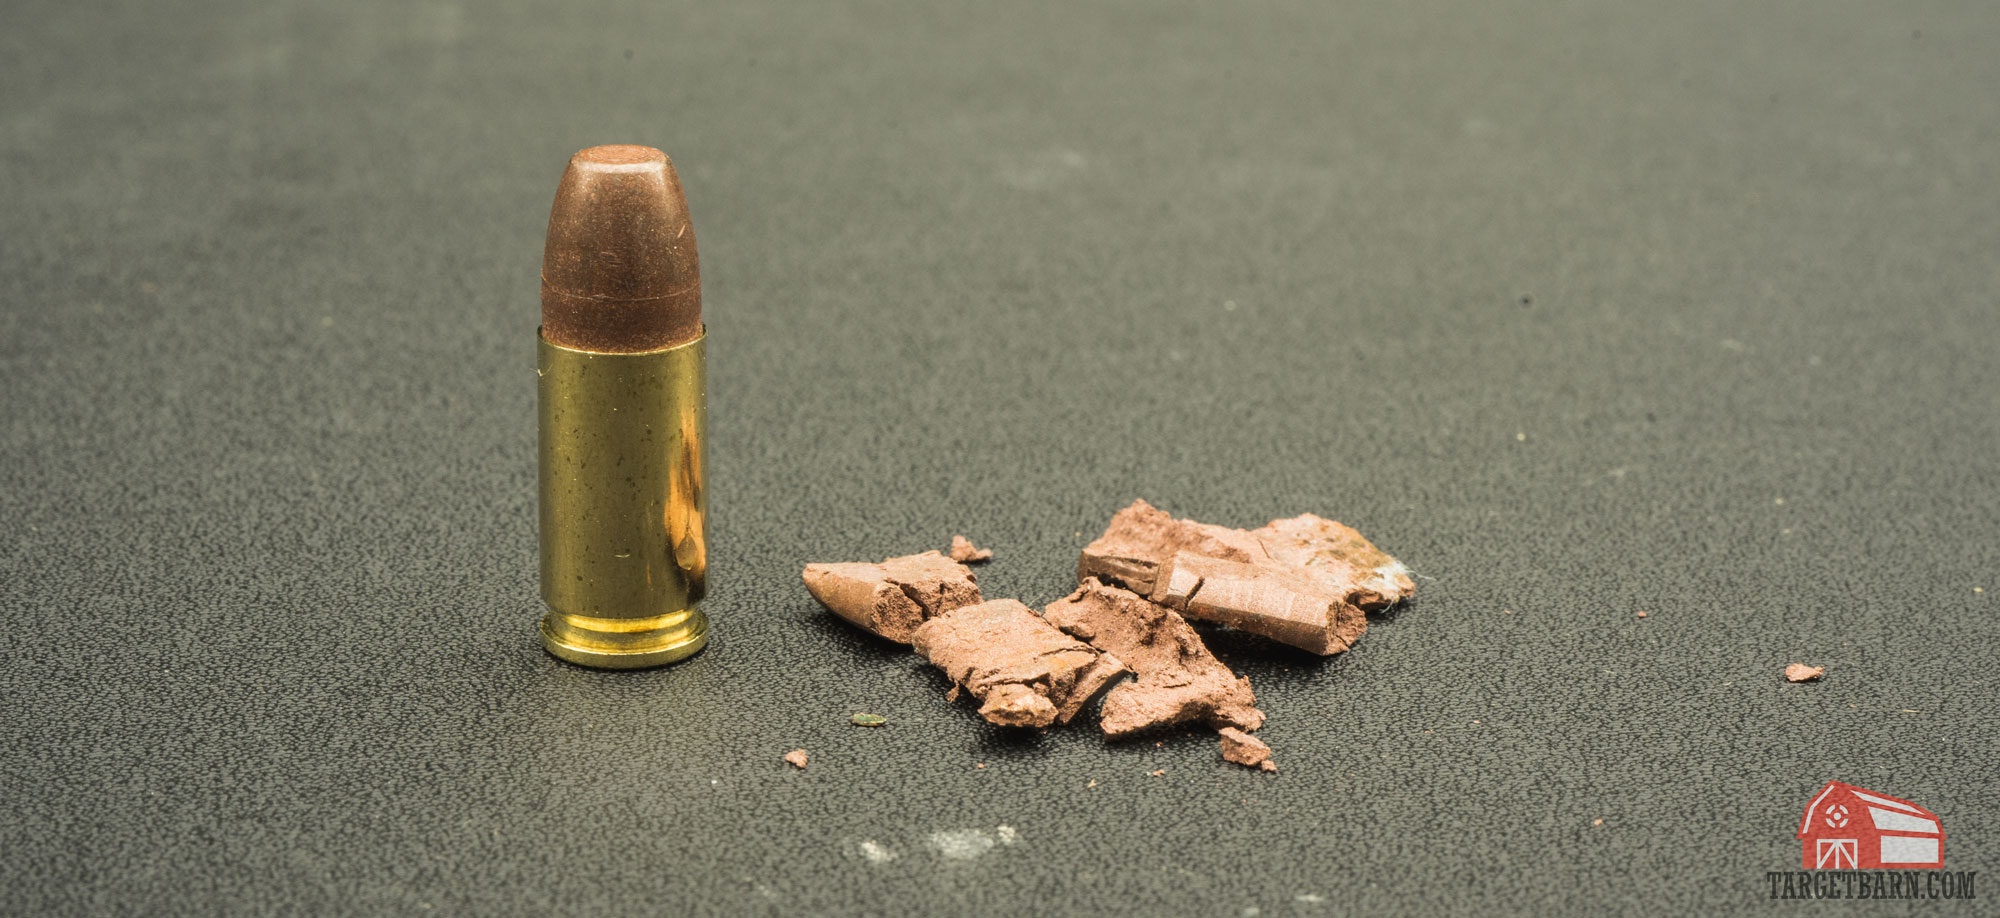 a frangible round next to a shattered frangible bullet